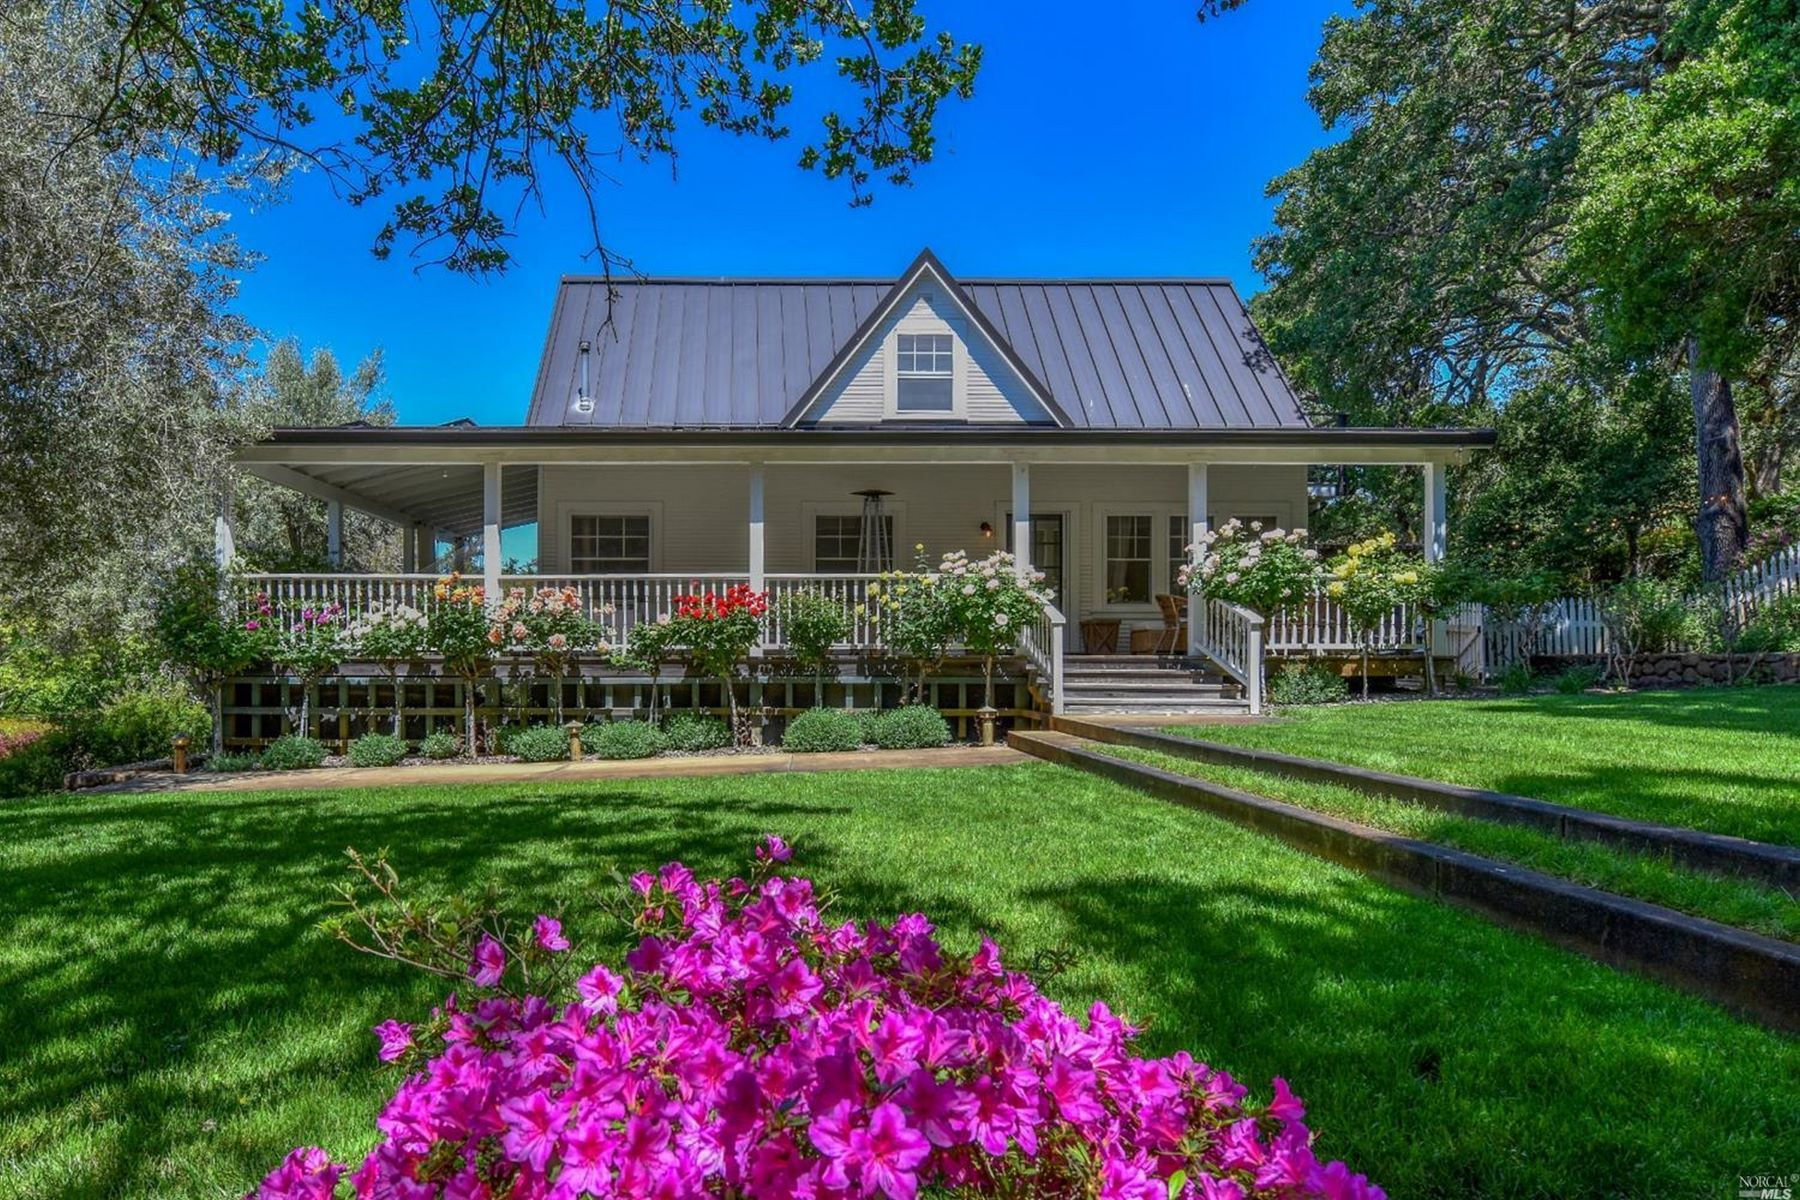 Single Family Homes for Active at Quintessential Modern Farmhouse Estate 5160 Wild Horse Valley Road Napa, California 94558 United States